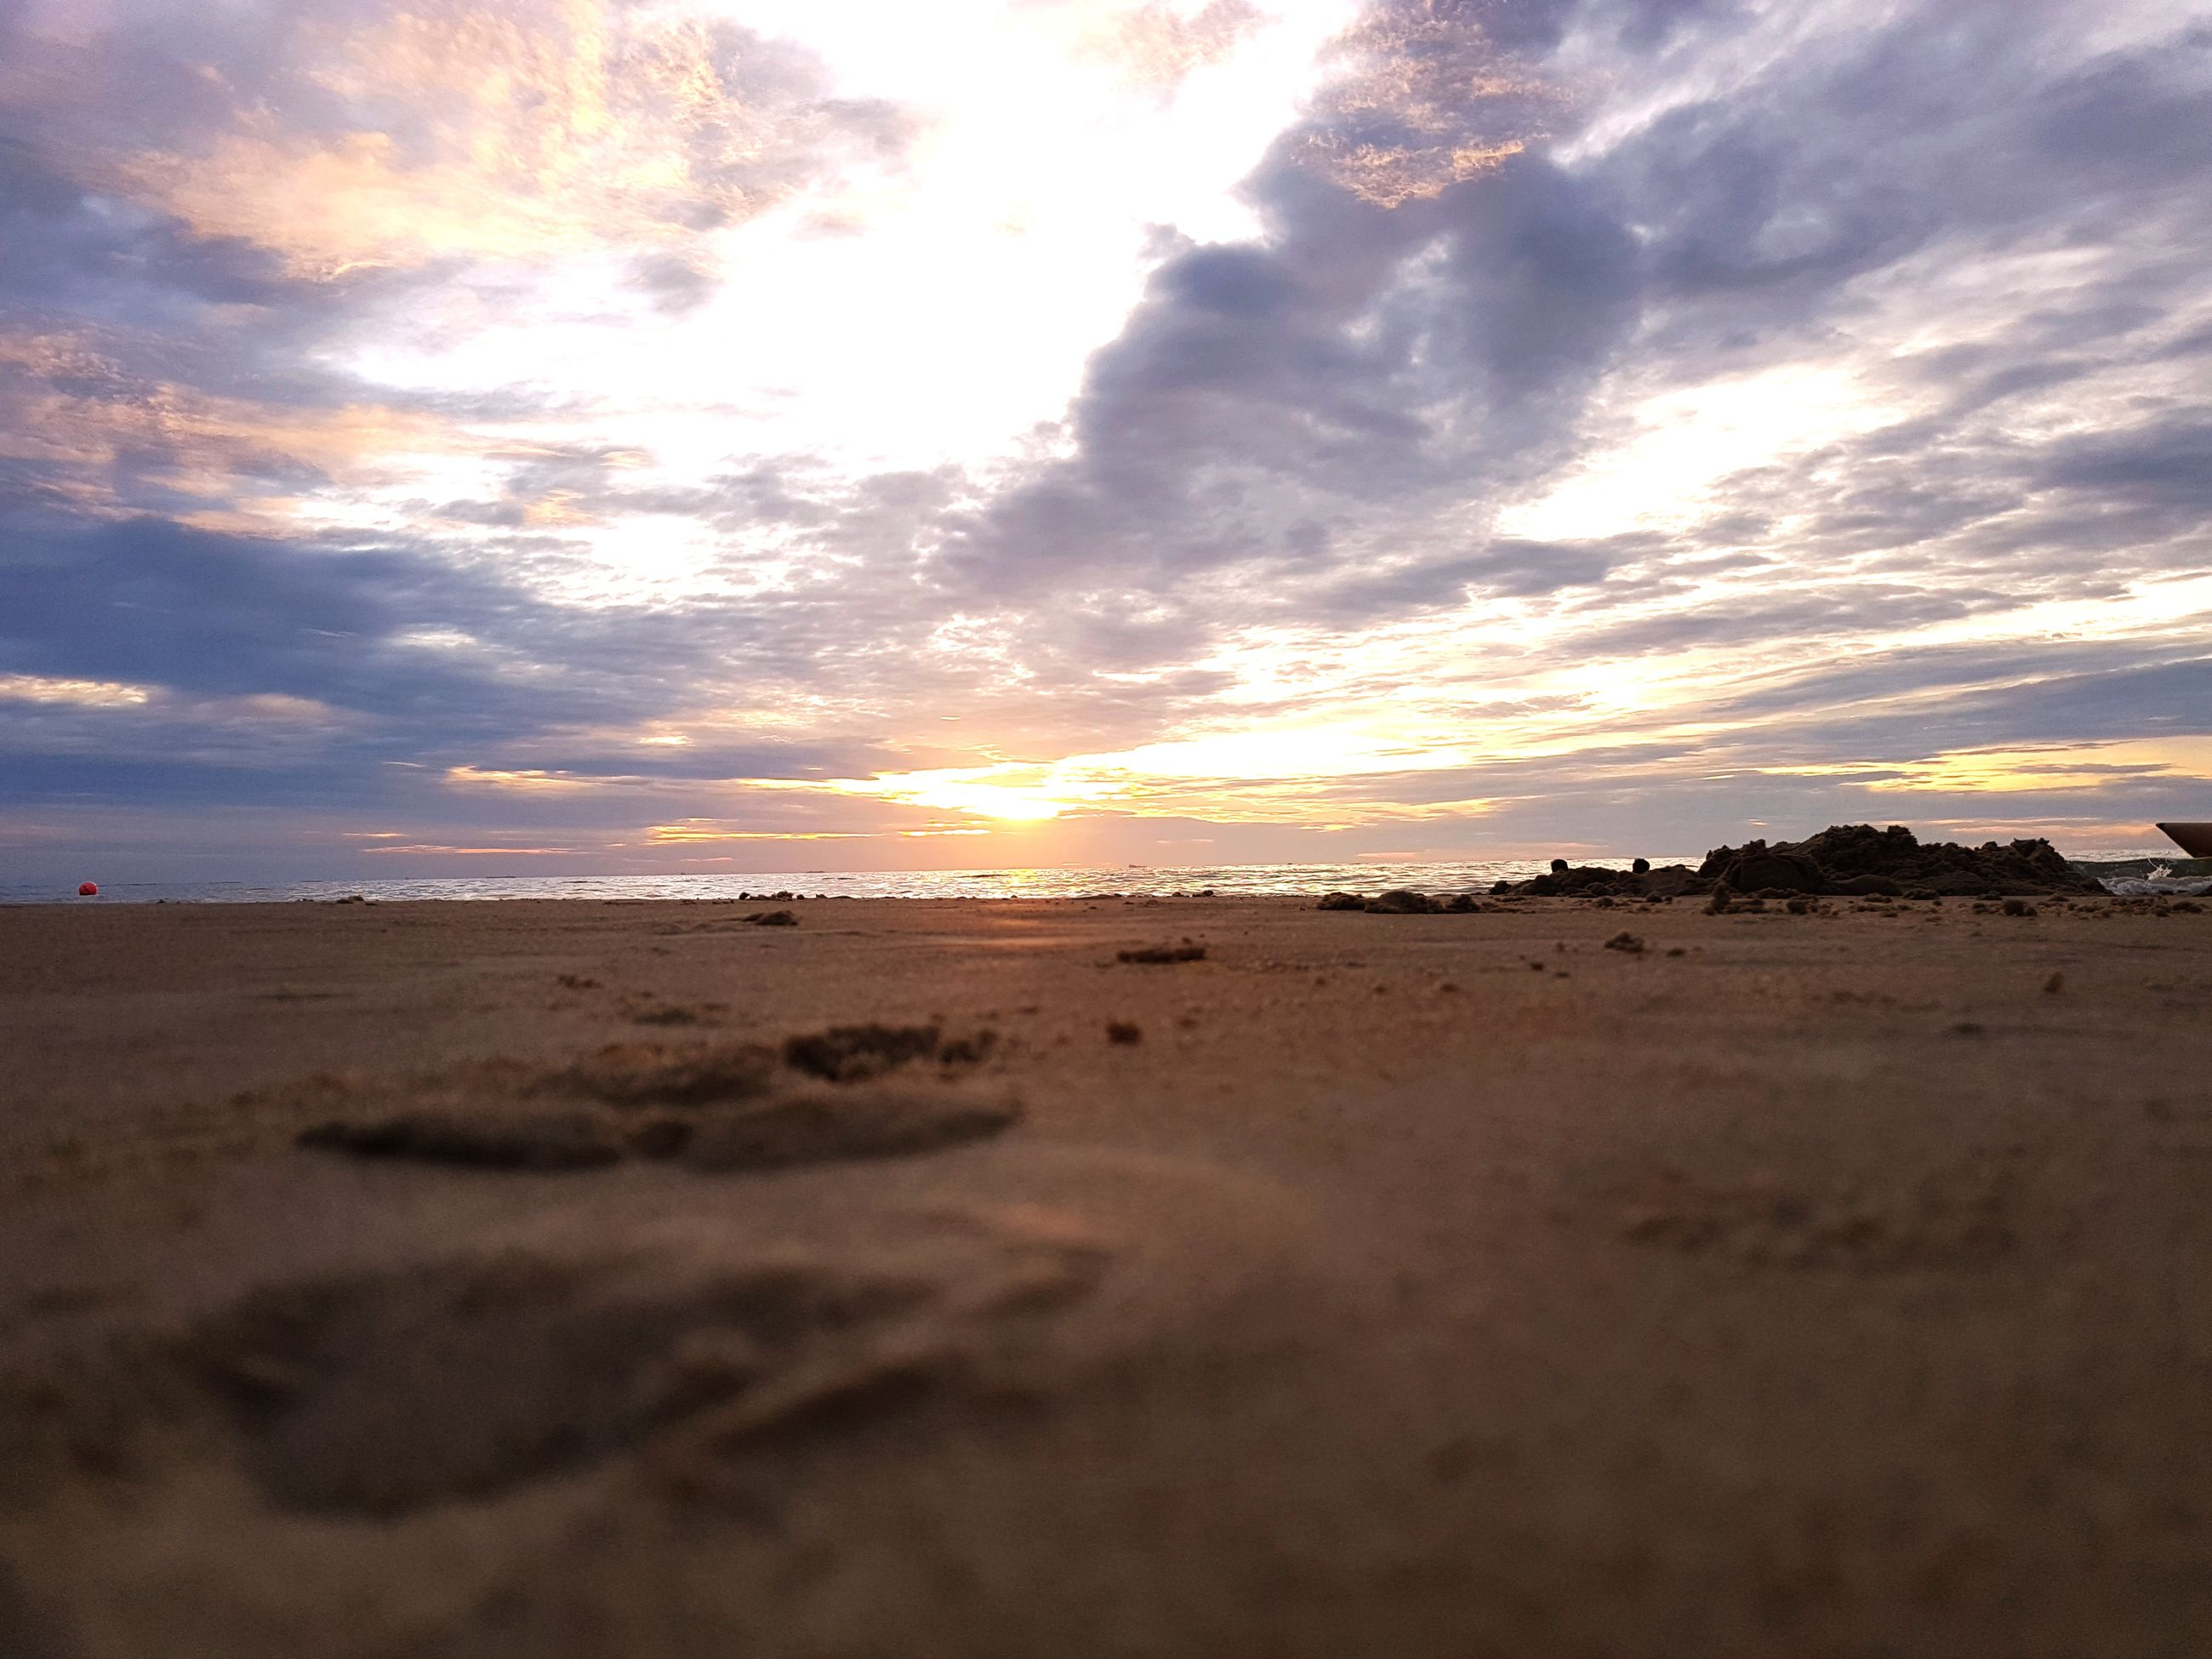 sand, beach, sky, nature, beauty in nature, sunset, sunlight, scenics, outdoors, cloud - sky, no people, tranquility, sun, sea, sand dune, day